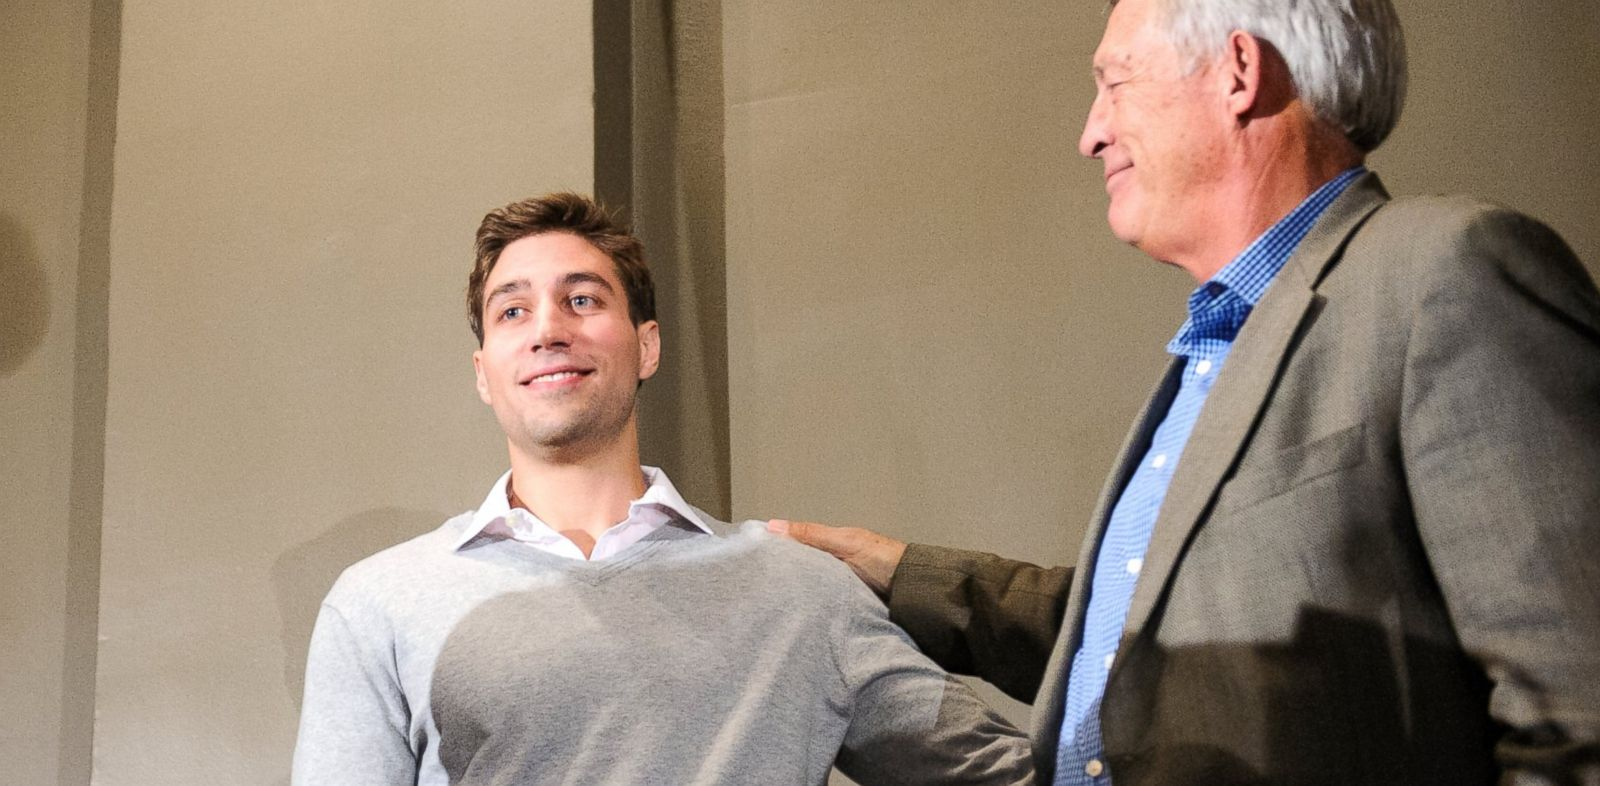 PHOTO: Ryan Ferguson, right, and his father Bill Ferguson share a moment during a press conference in Columbia, Mo., after Ryans release from prison.